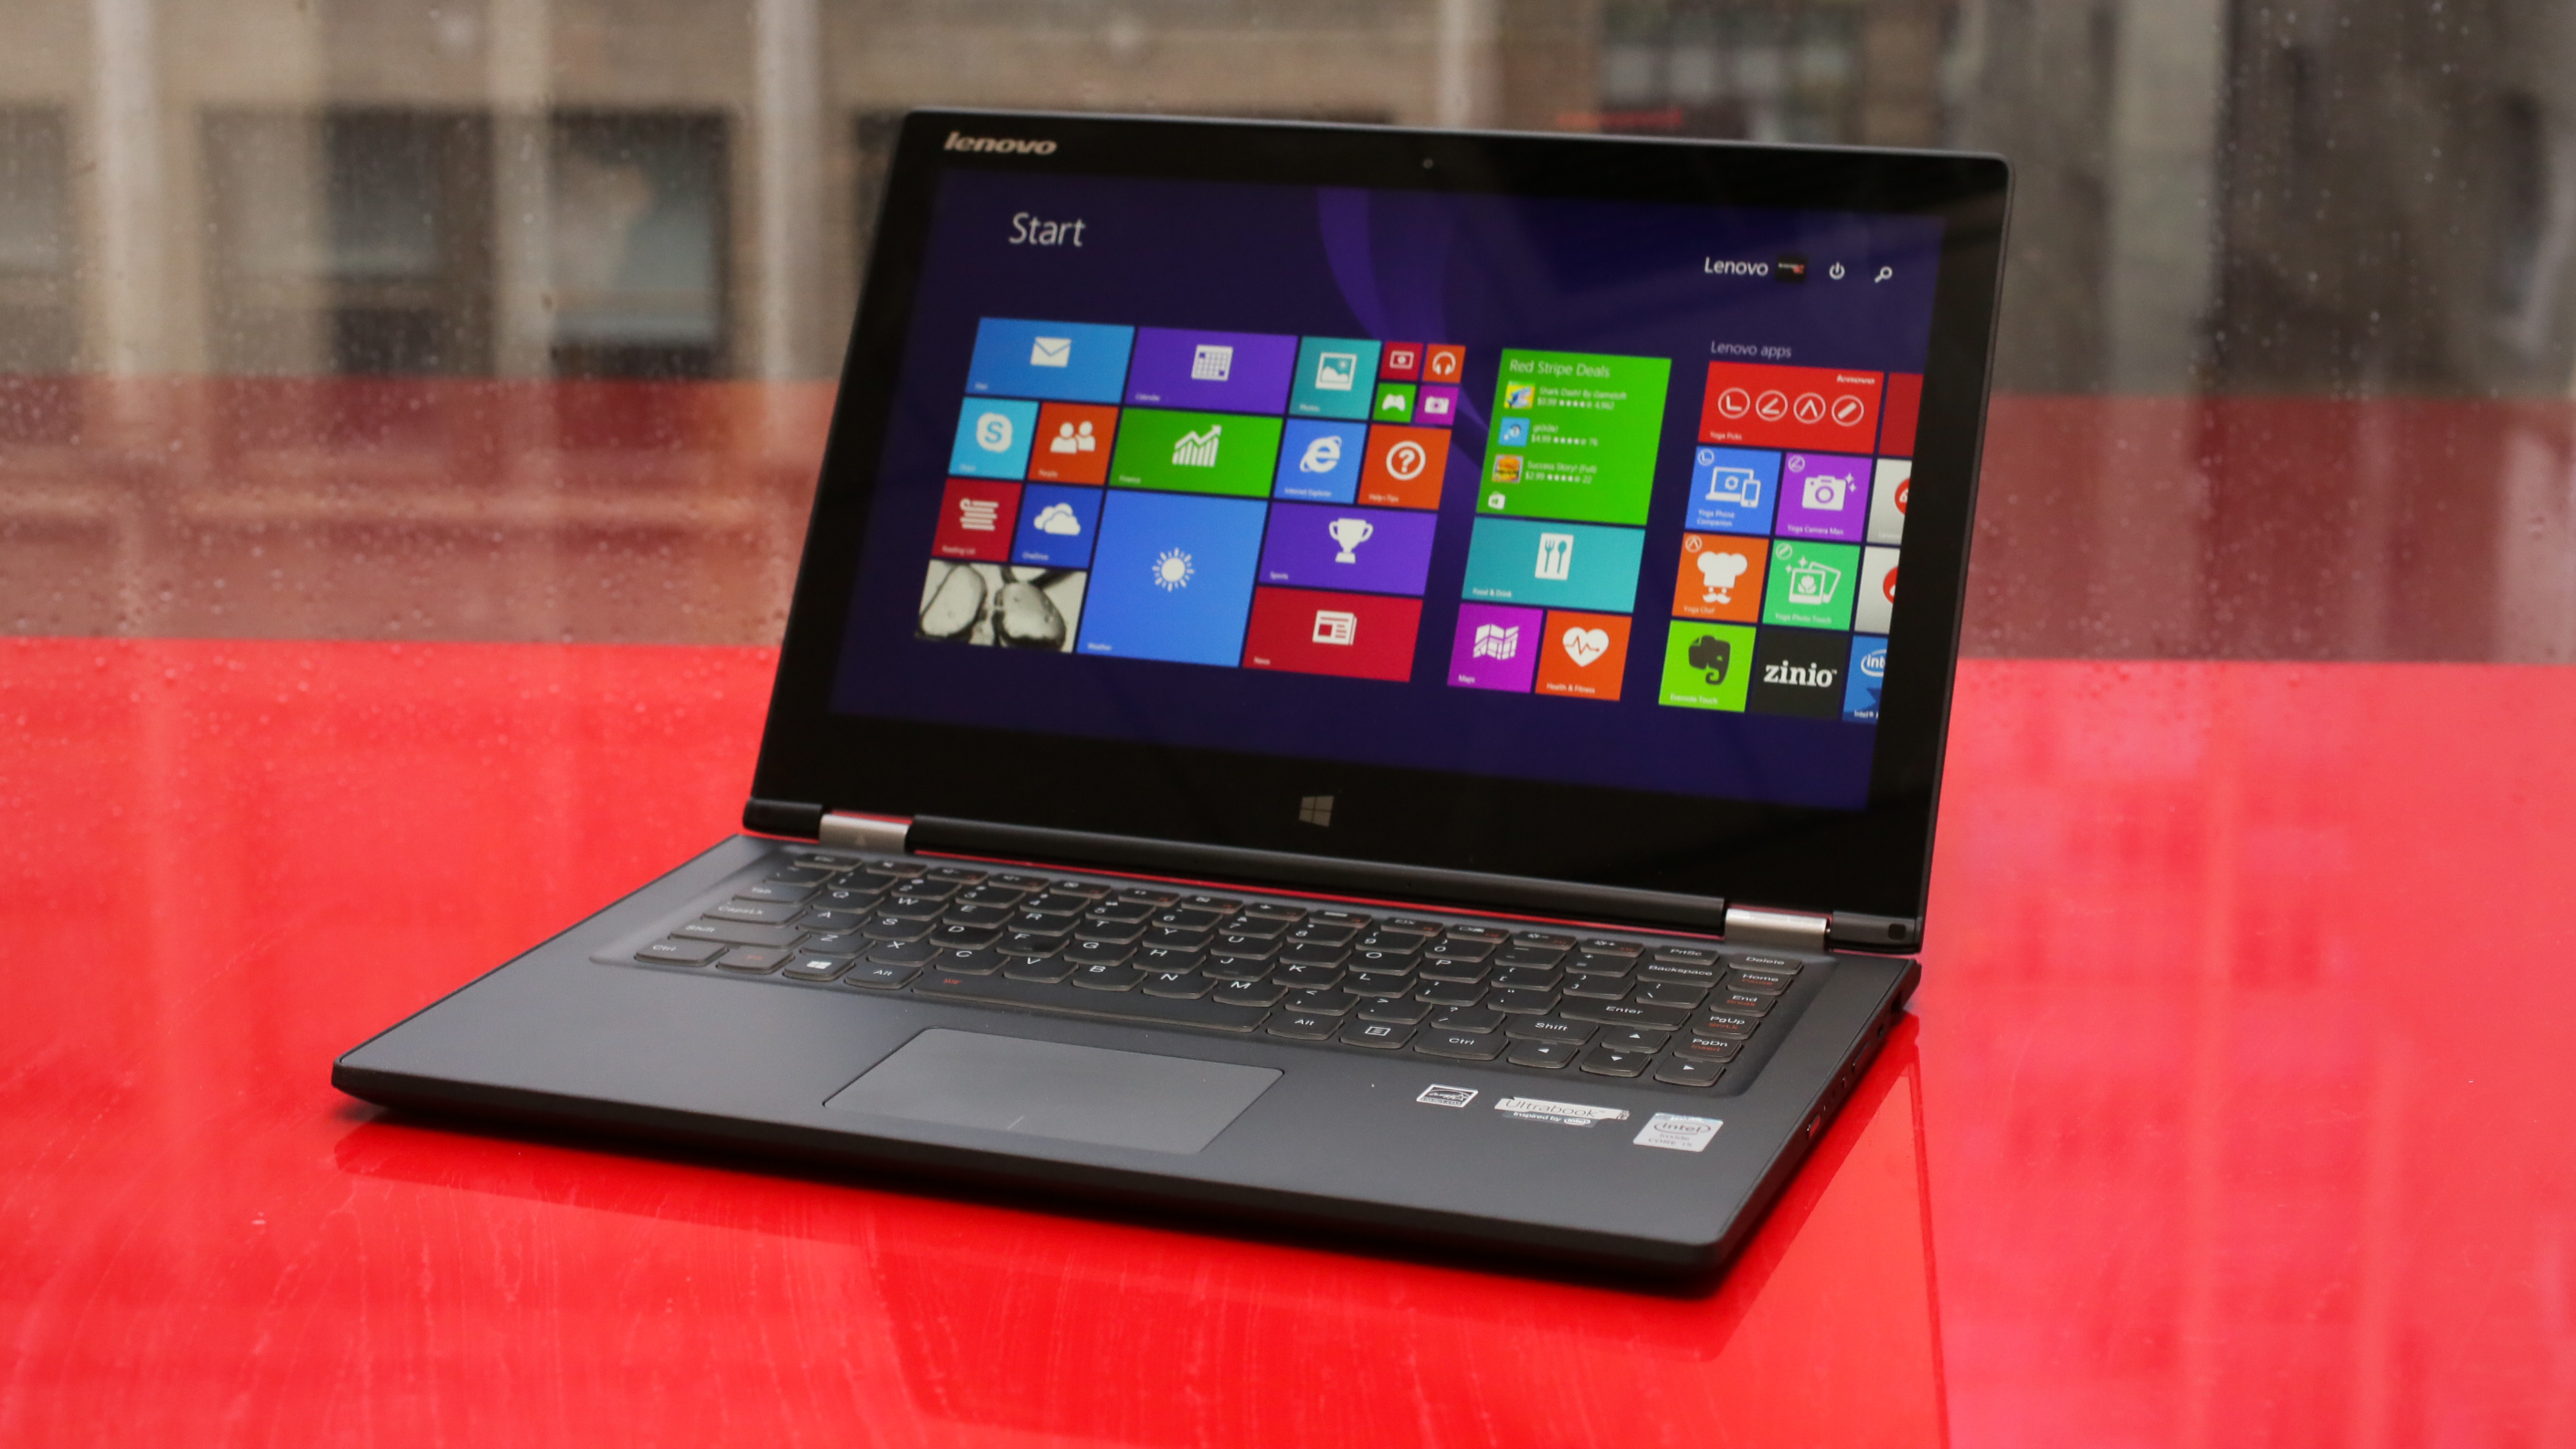 lenovo-yoga-2-13-inch-product-photos05.jpg